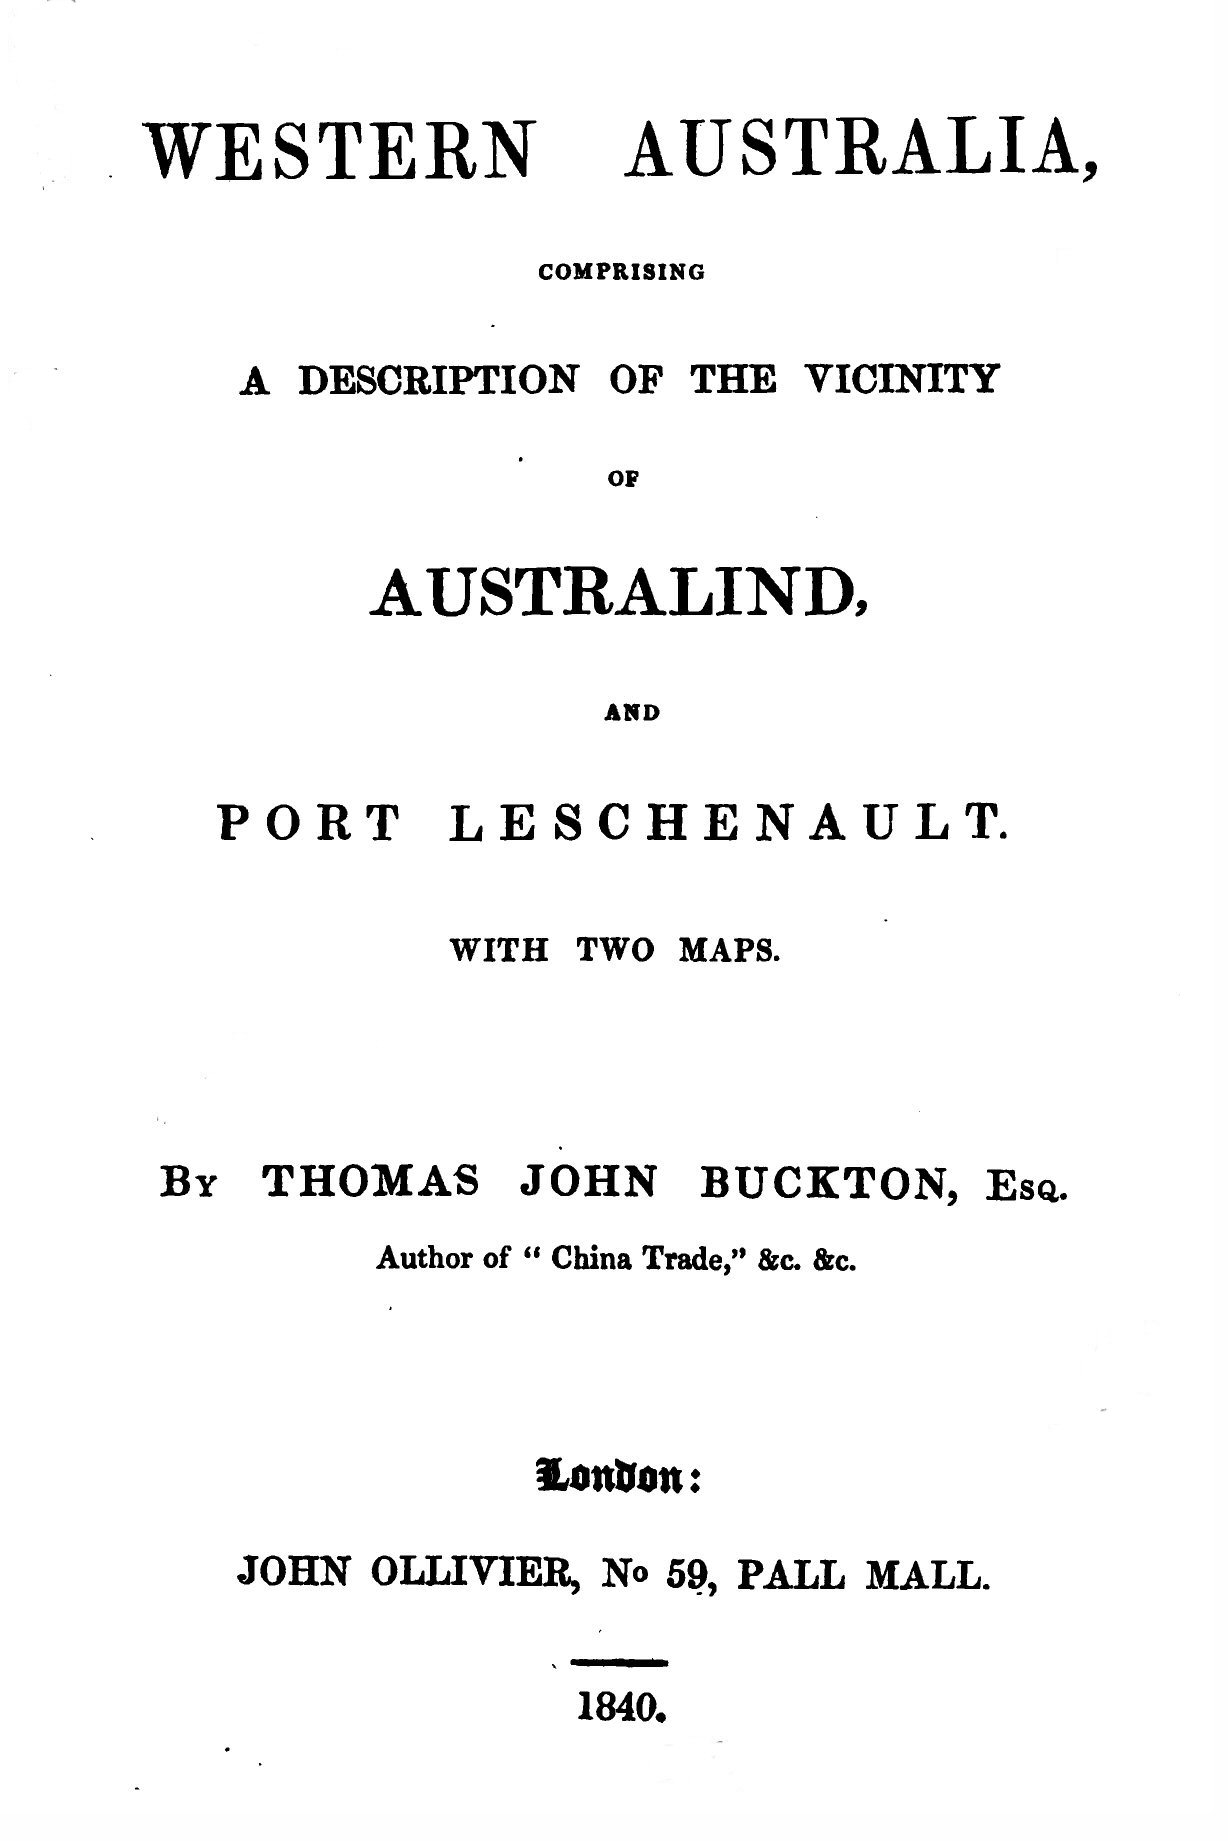 Western Australia, Comprising a Description of the Vicinity of